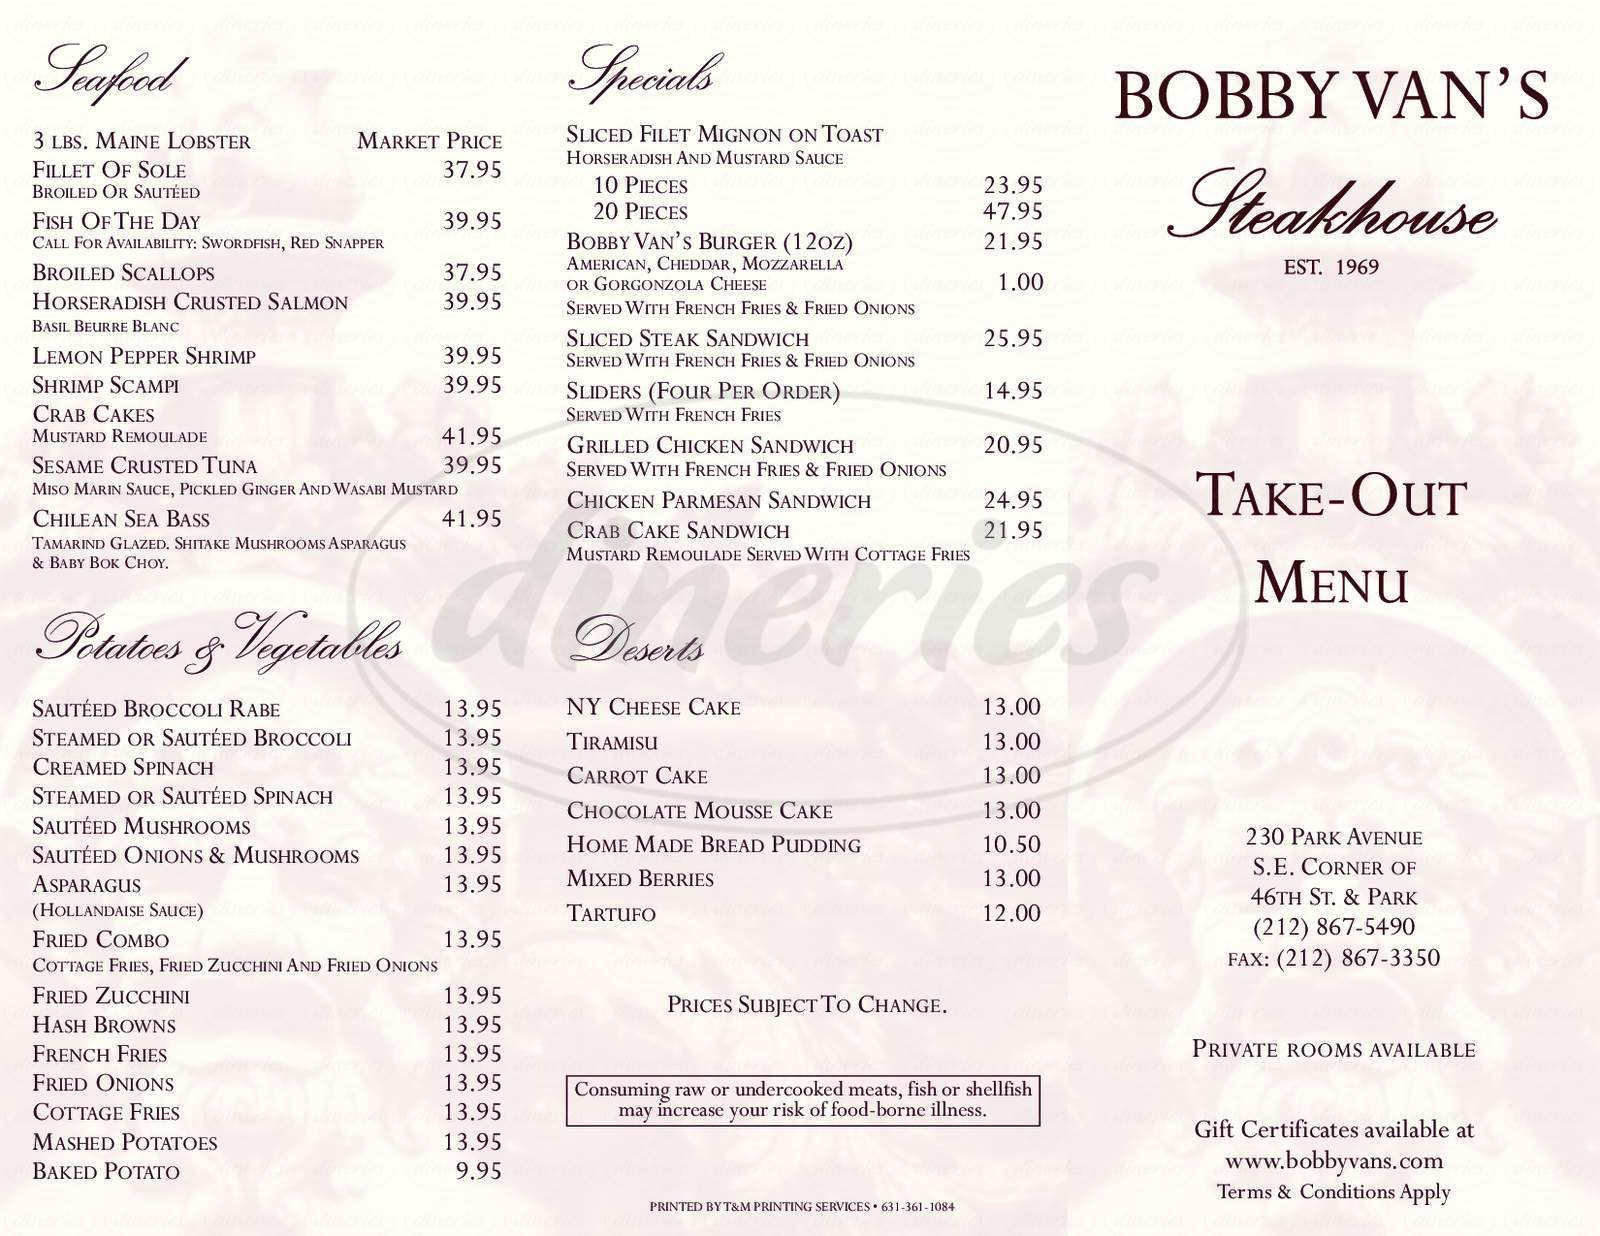 menu for Bobby Van's Steakhouse